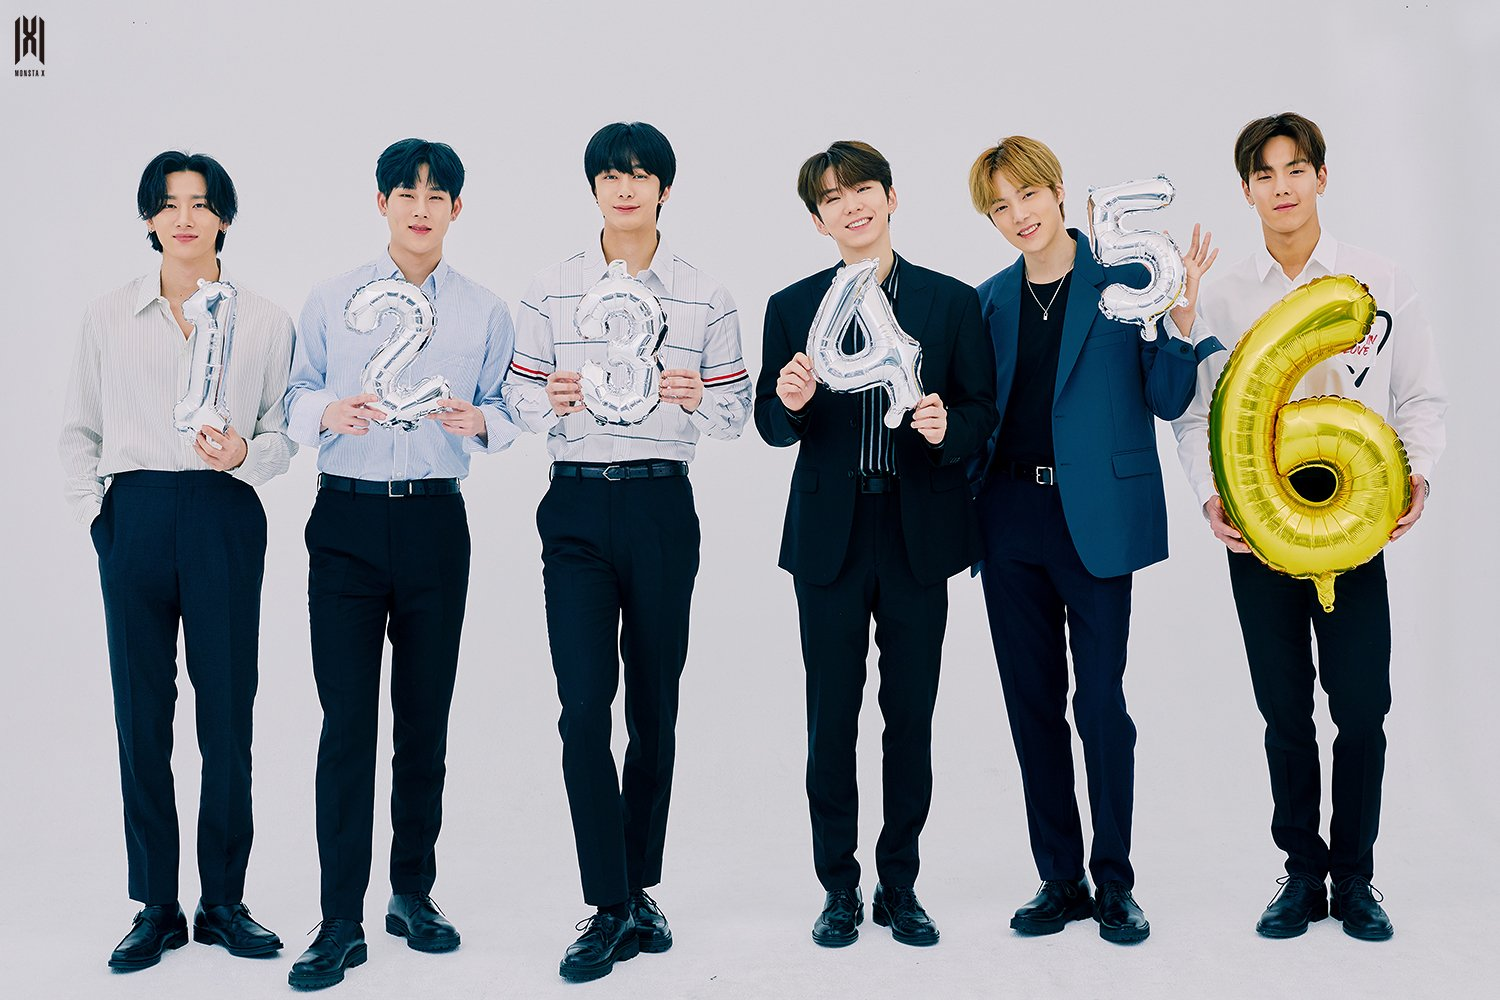 MONSTA X And Its Fruitful Success Over The Past Six Years As An All-Rounder Group